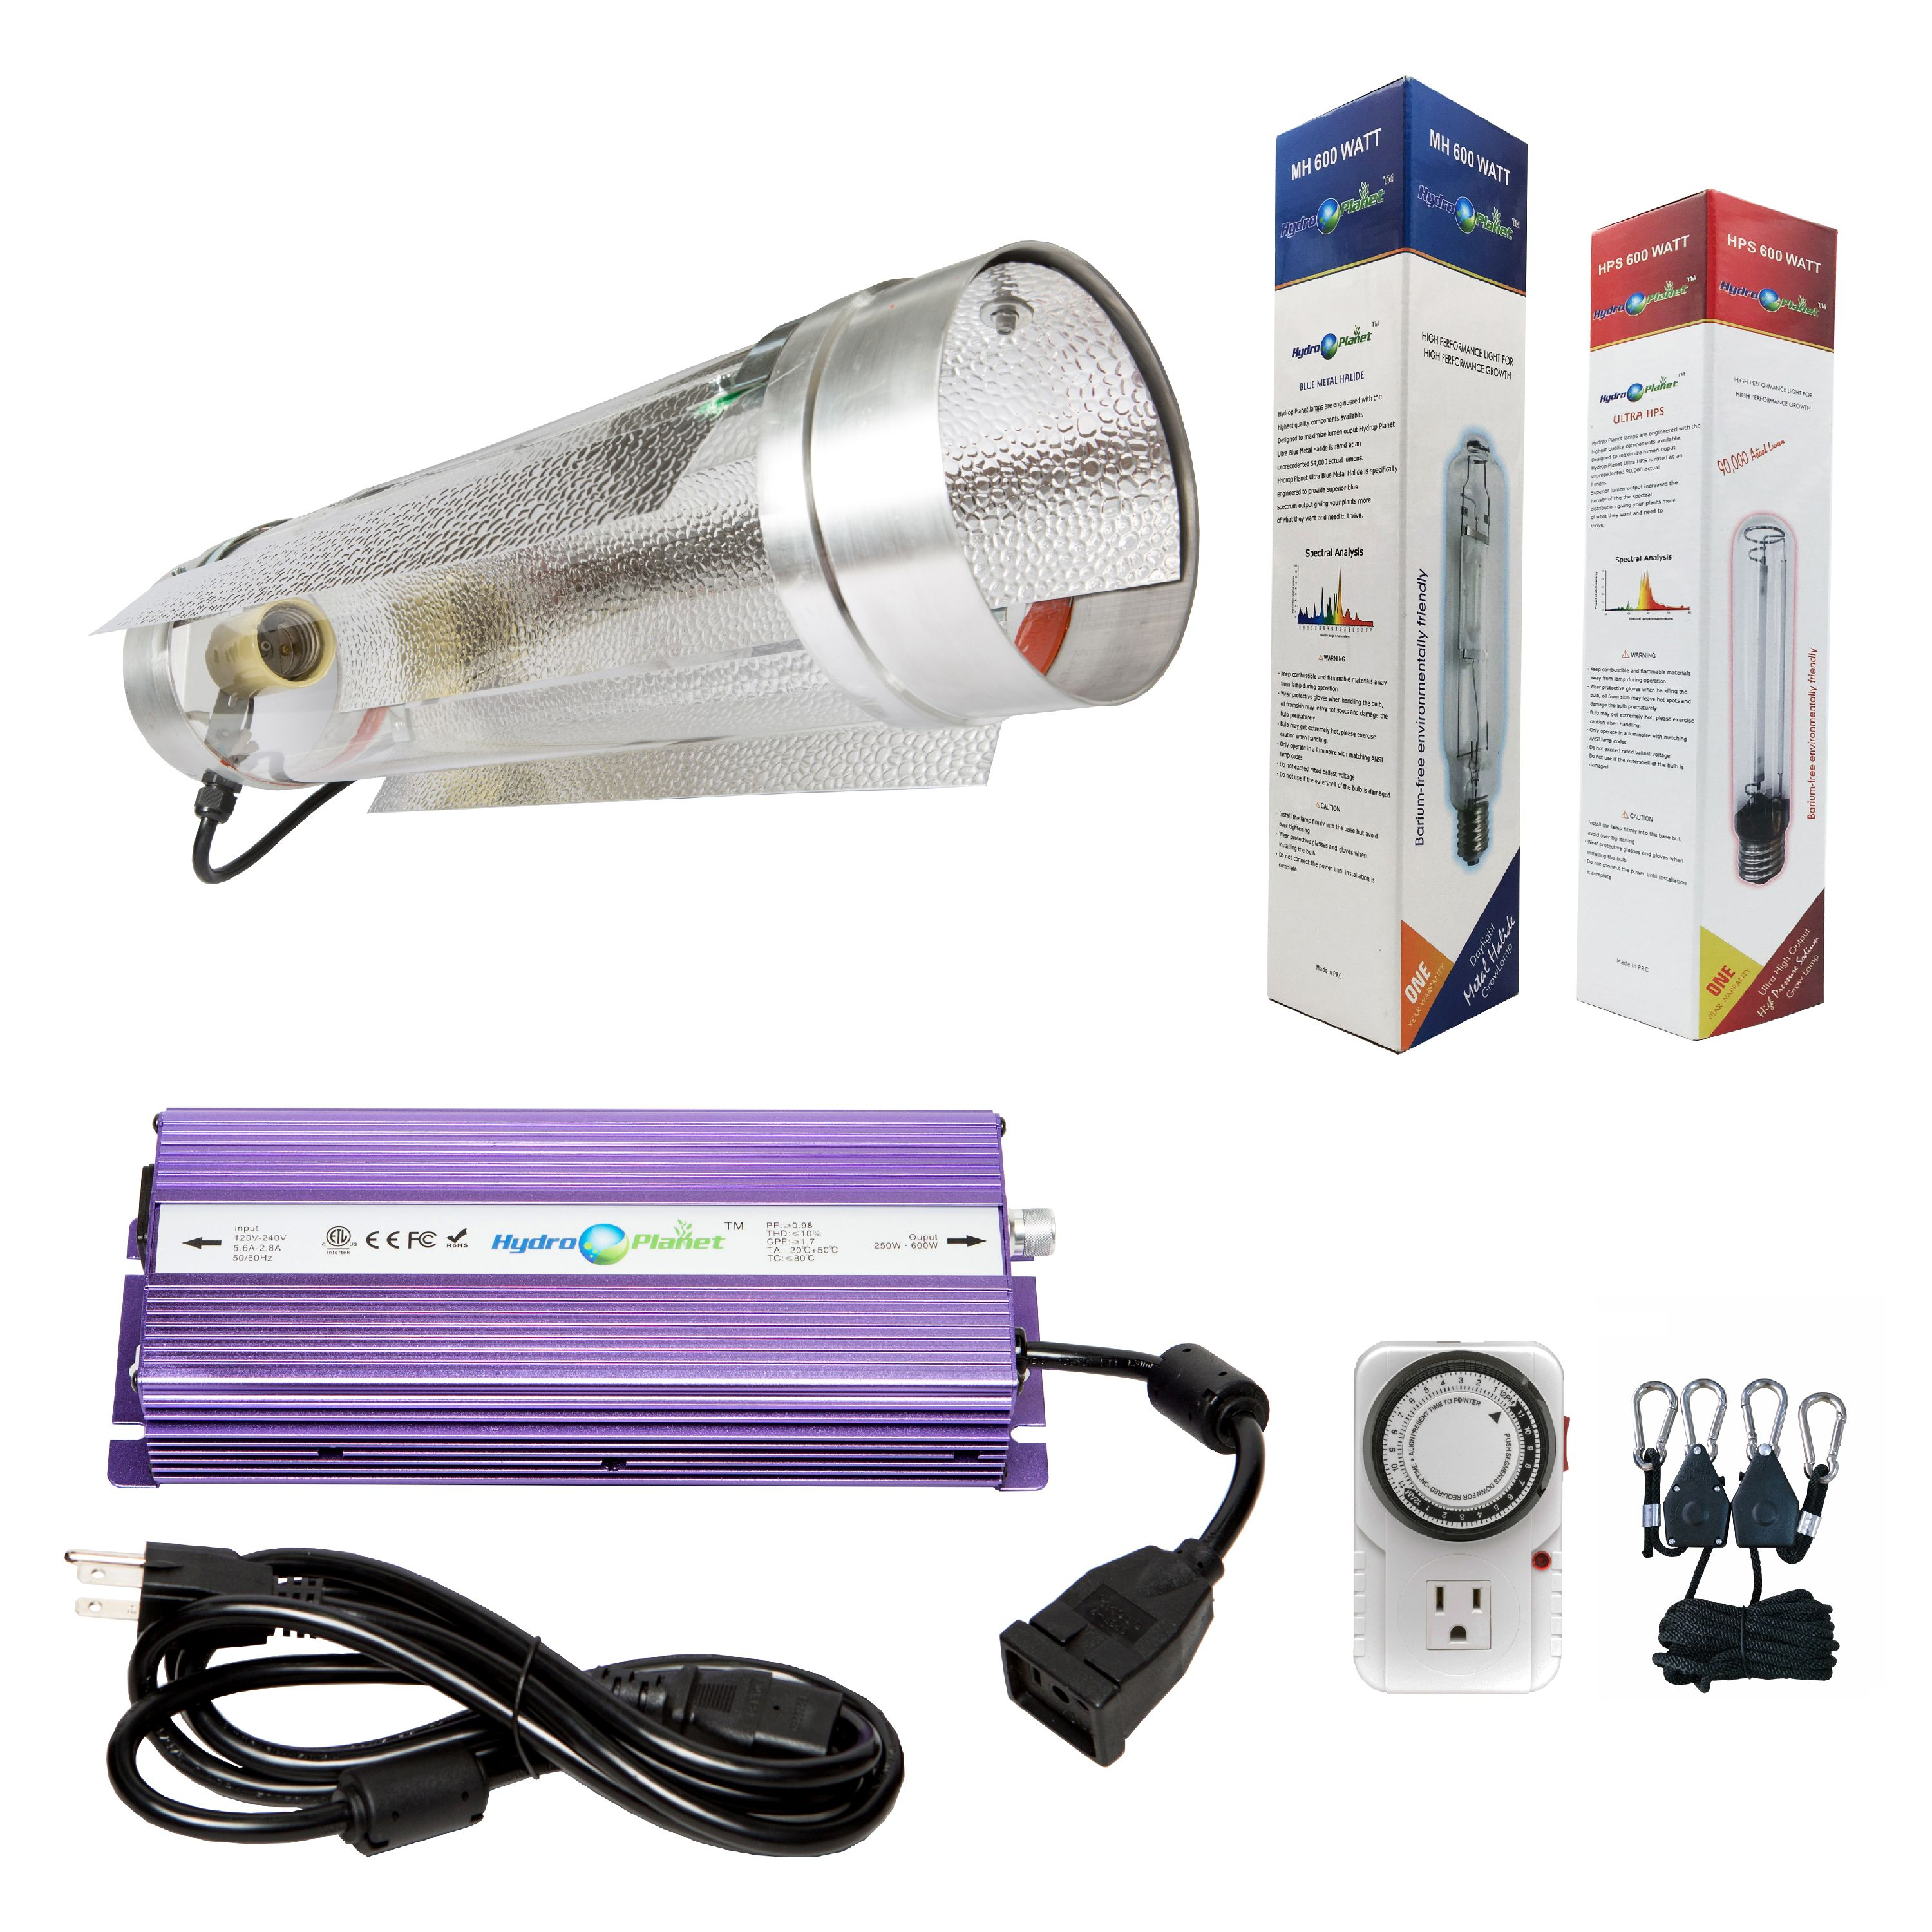 Hydroplanet™ 600w Digital Ballast Dimable HPS Mh Grow Light System for Plant with Air Cooled Tube Reflector